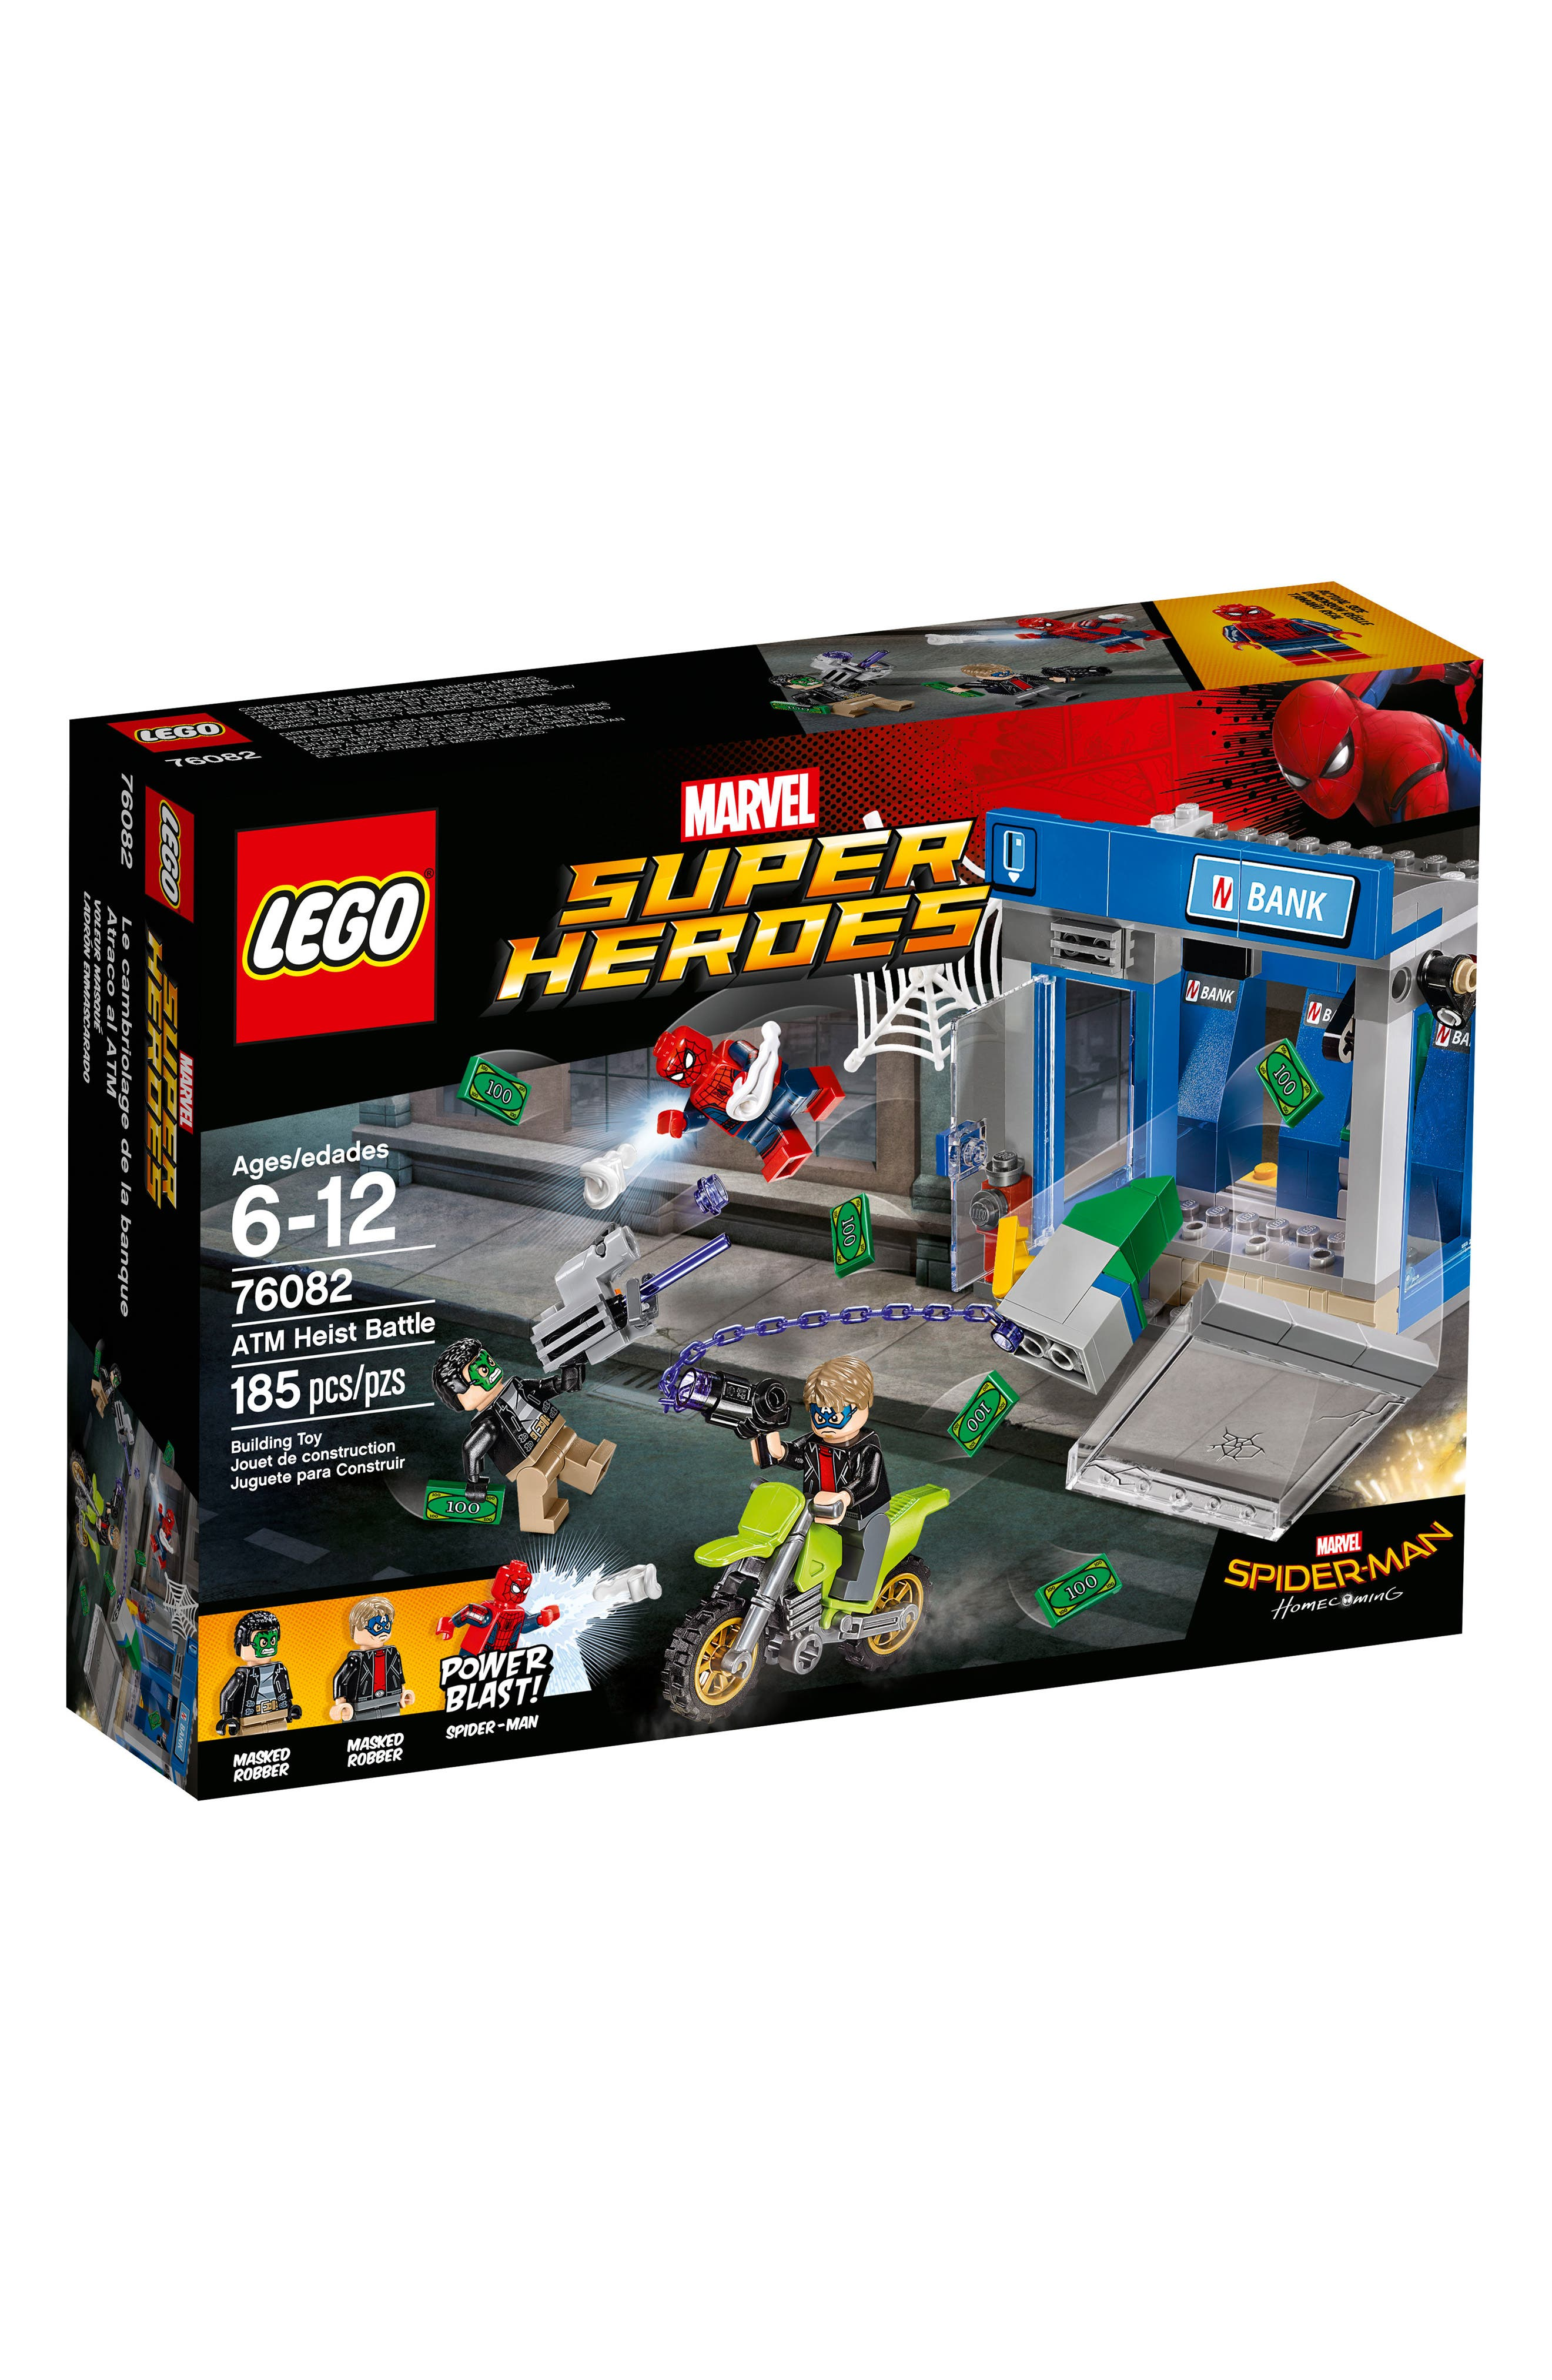 Marvel Super Heroes Spider-Man ATM Heist Battle Set - 76082,                         Main,                         color, 400